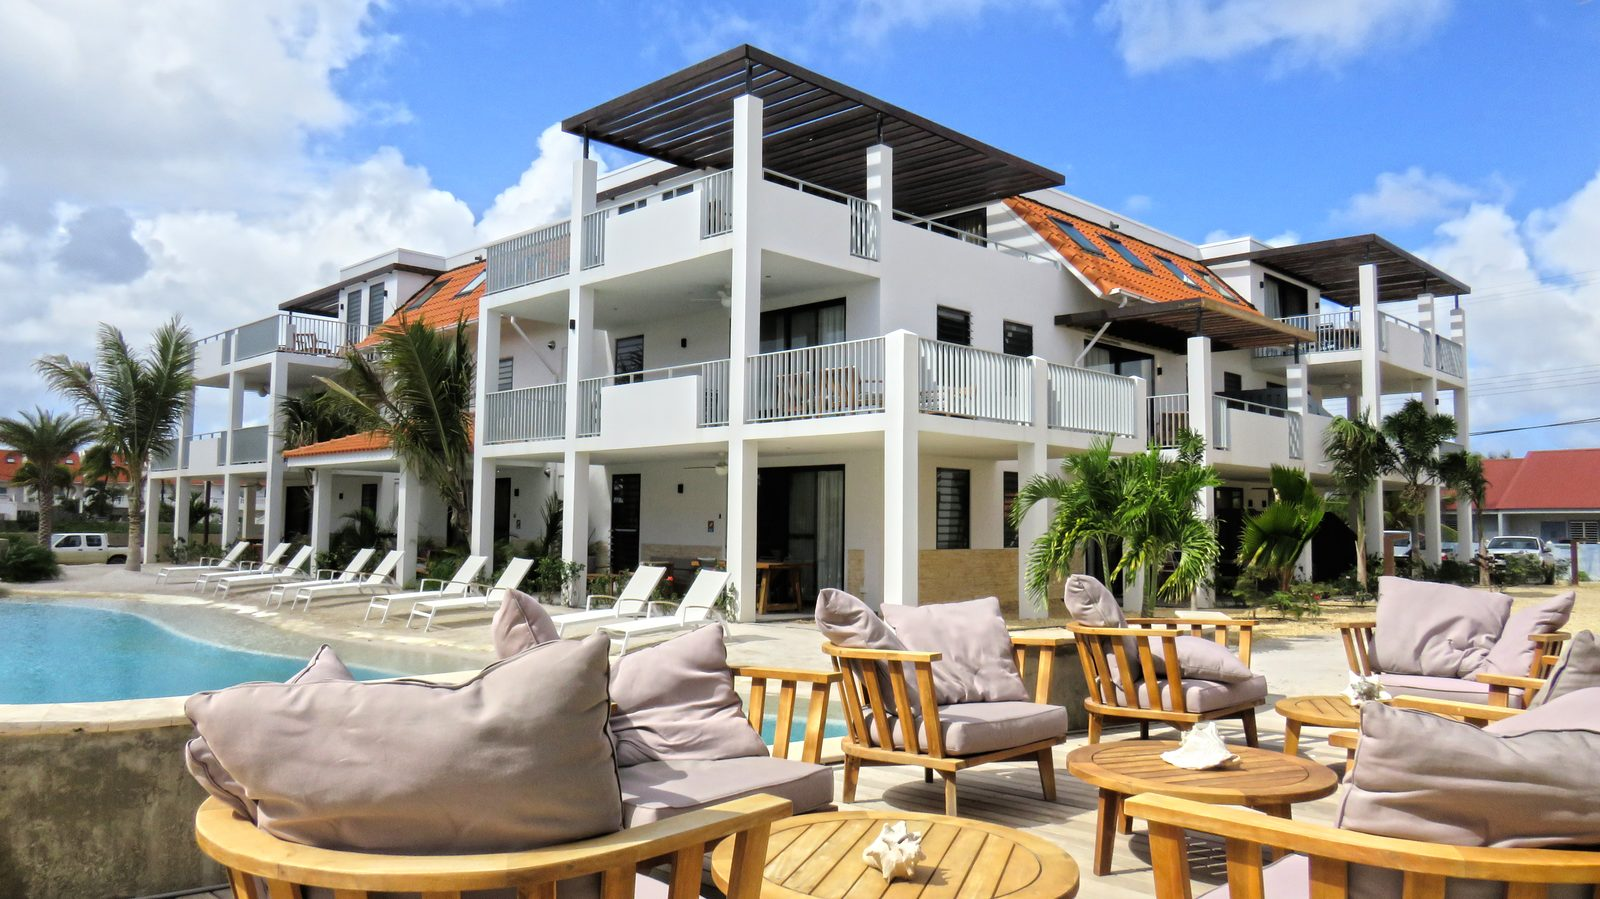 Searching for a house for rent on Bonaire? Take a look at the options at Resort Bonaire.